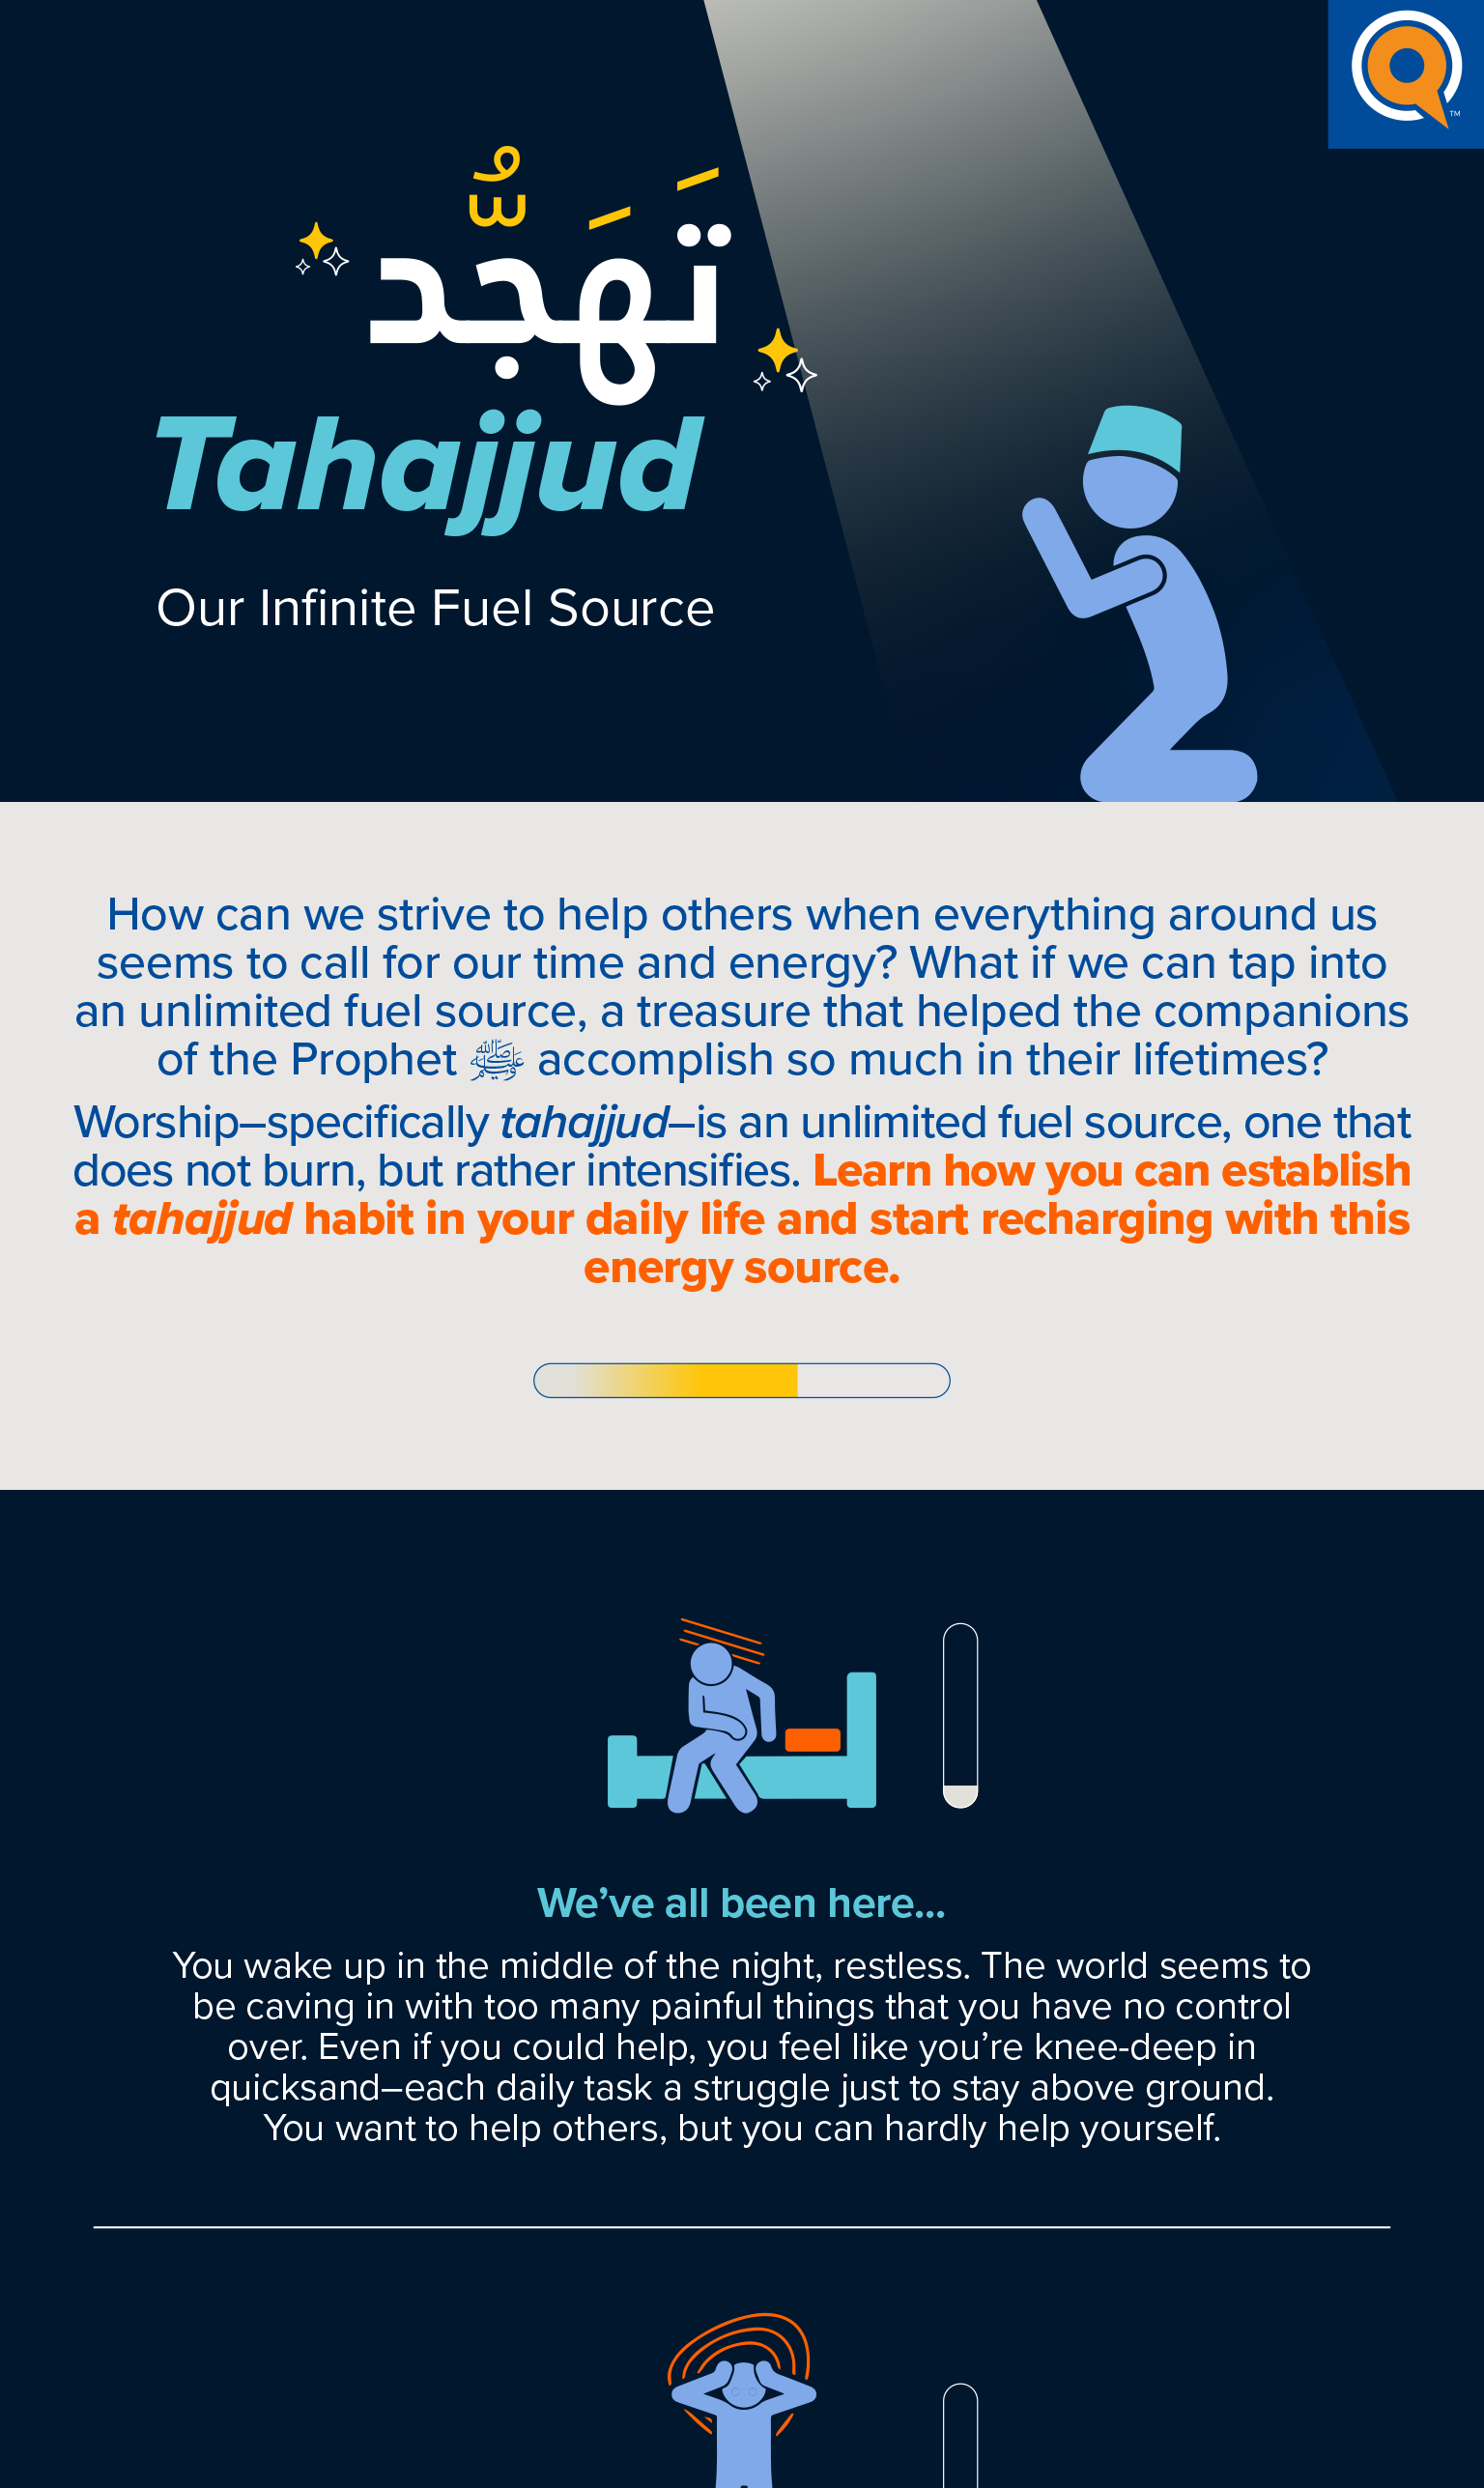 Tahajjud: Our Infinite Fuel Source | Infographic